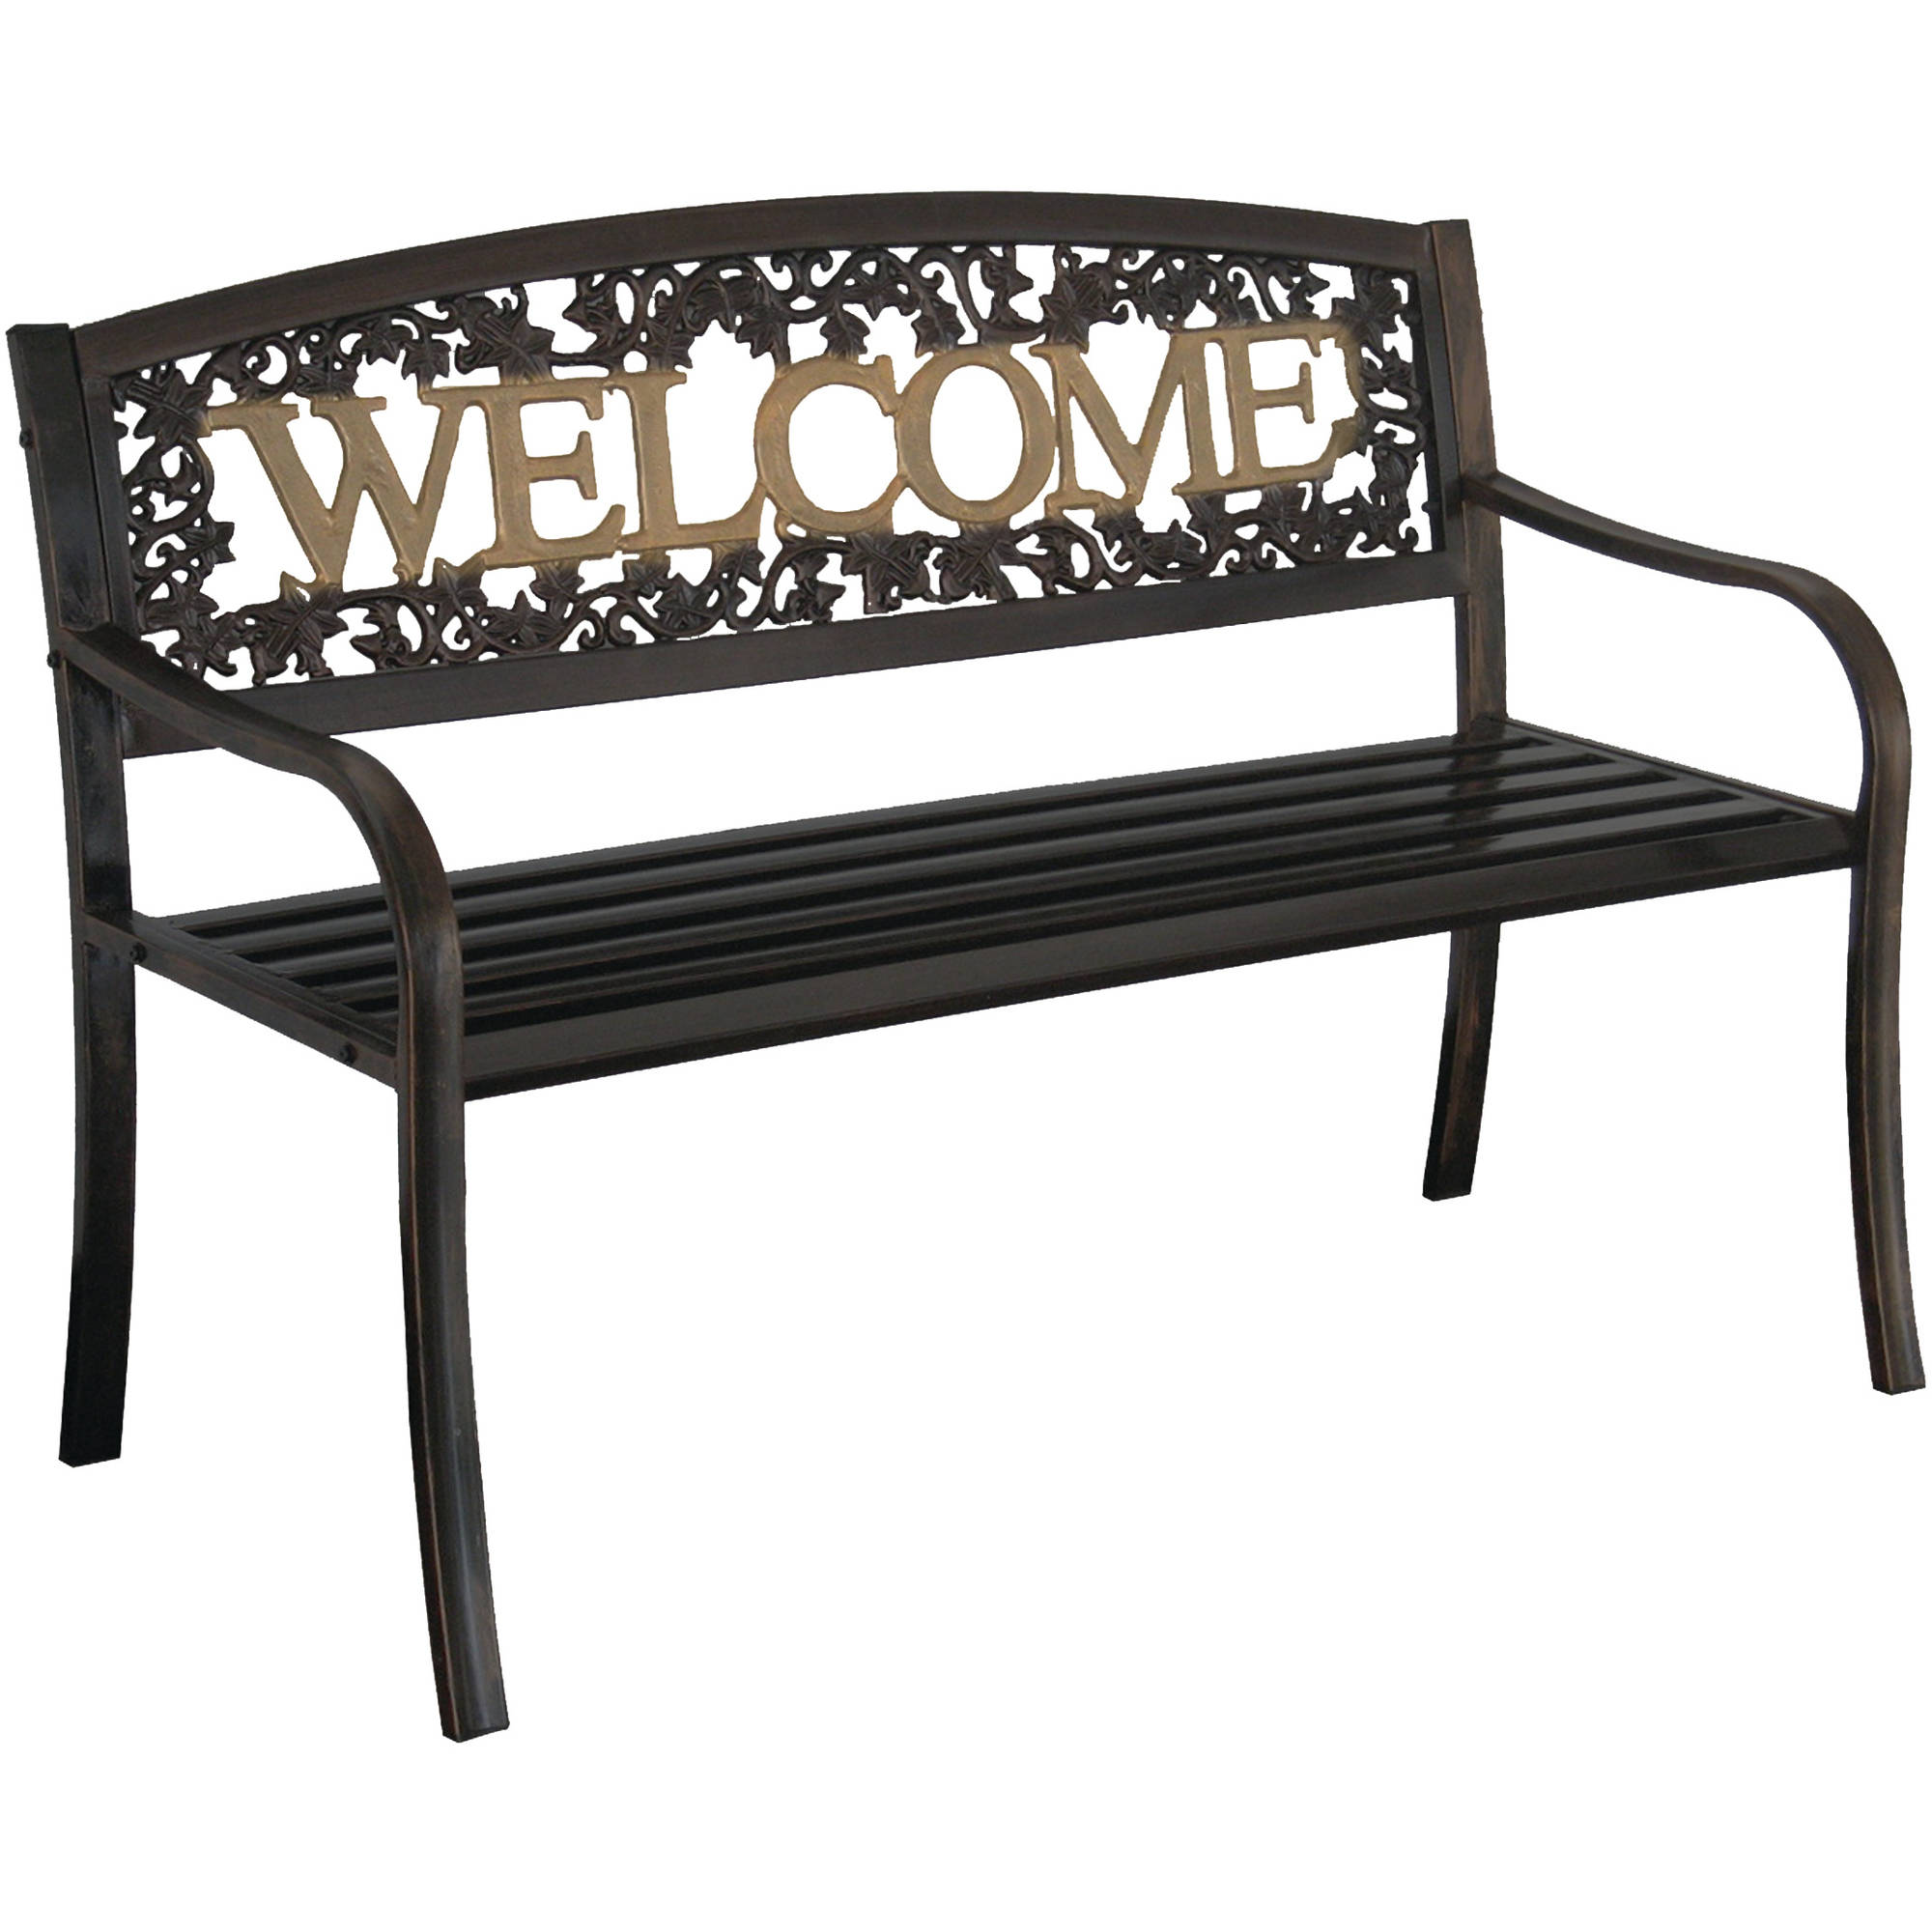 outdoor benches leigh country welcome outdoor garden bench, black/gold - walmart.com LVGEZSM